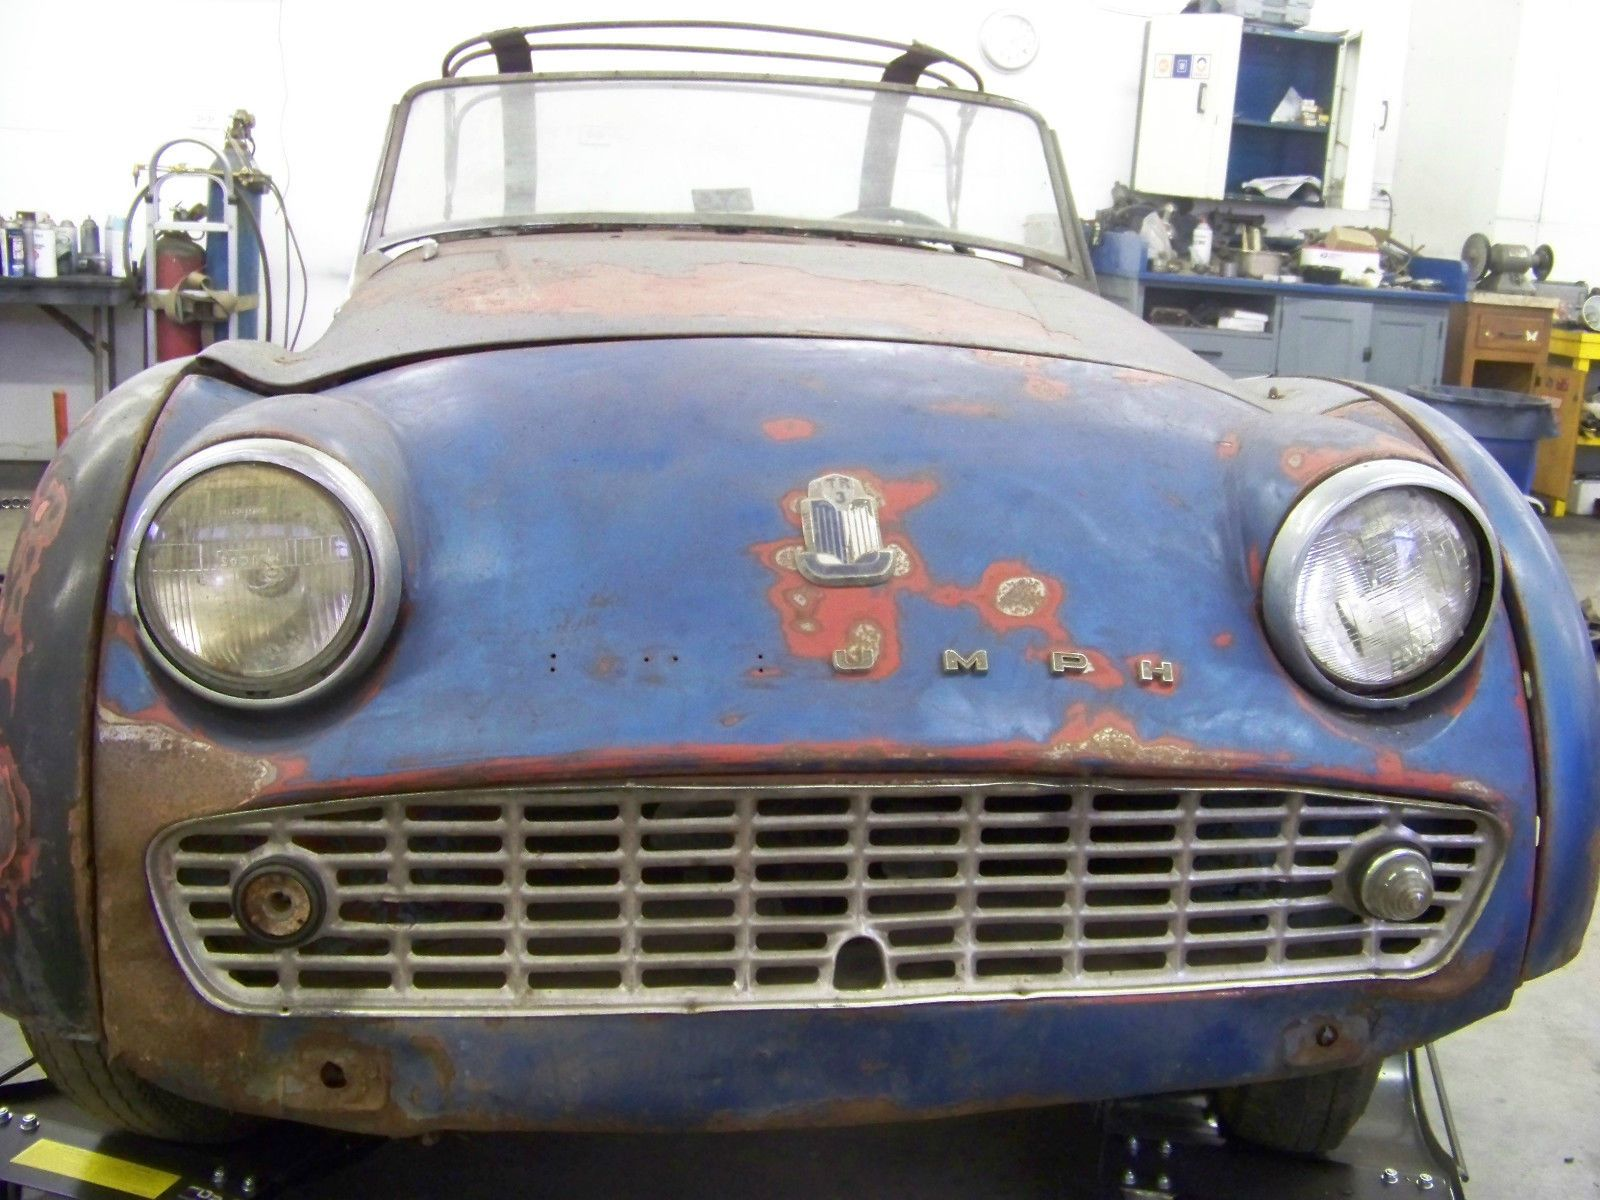 1960 Triumph TR3 convertible – Rough, but repairable | Wrecked sport ...